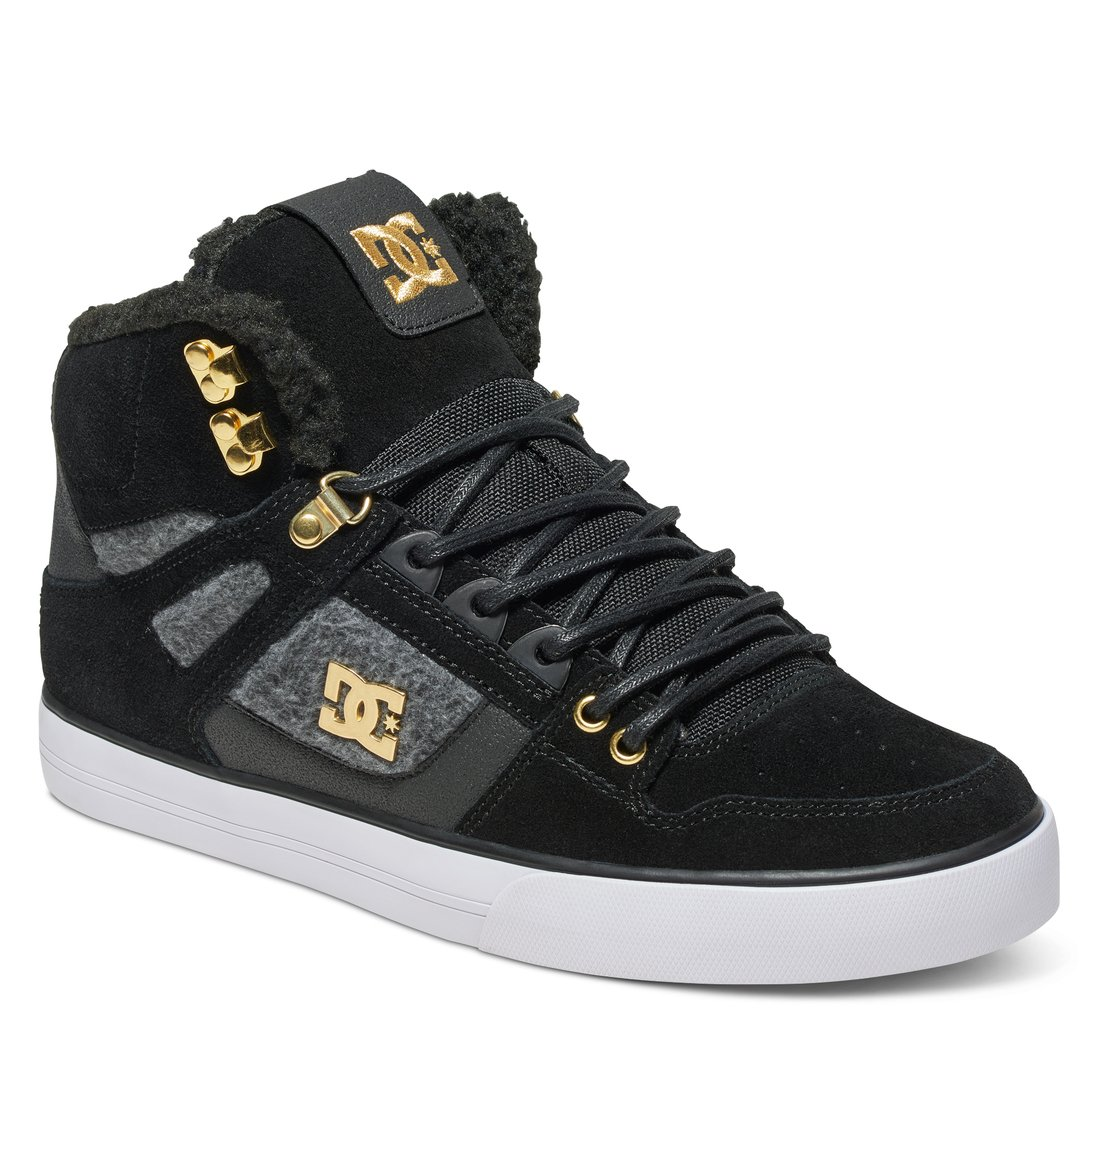 dc shoes spartan high wc wnt chaussures montantes pour. Black Bedroom Furniture Sets. Home Design Ideas